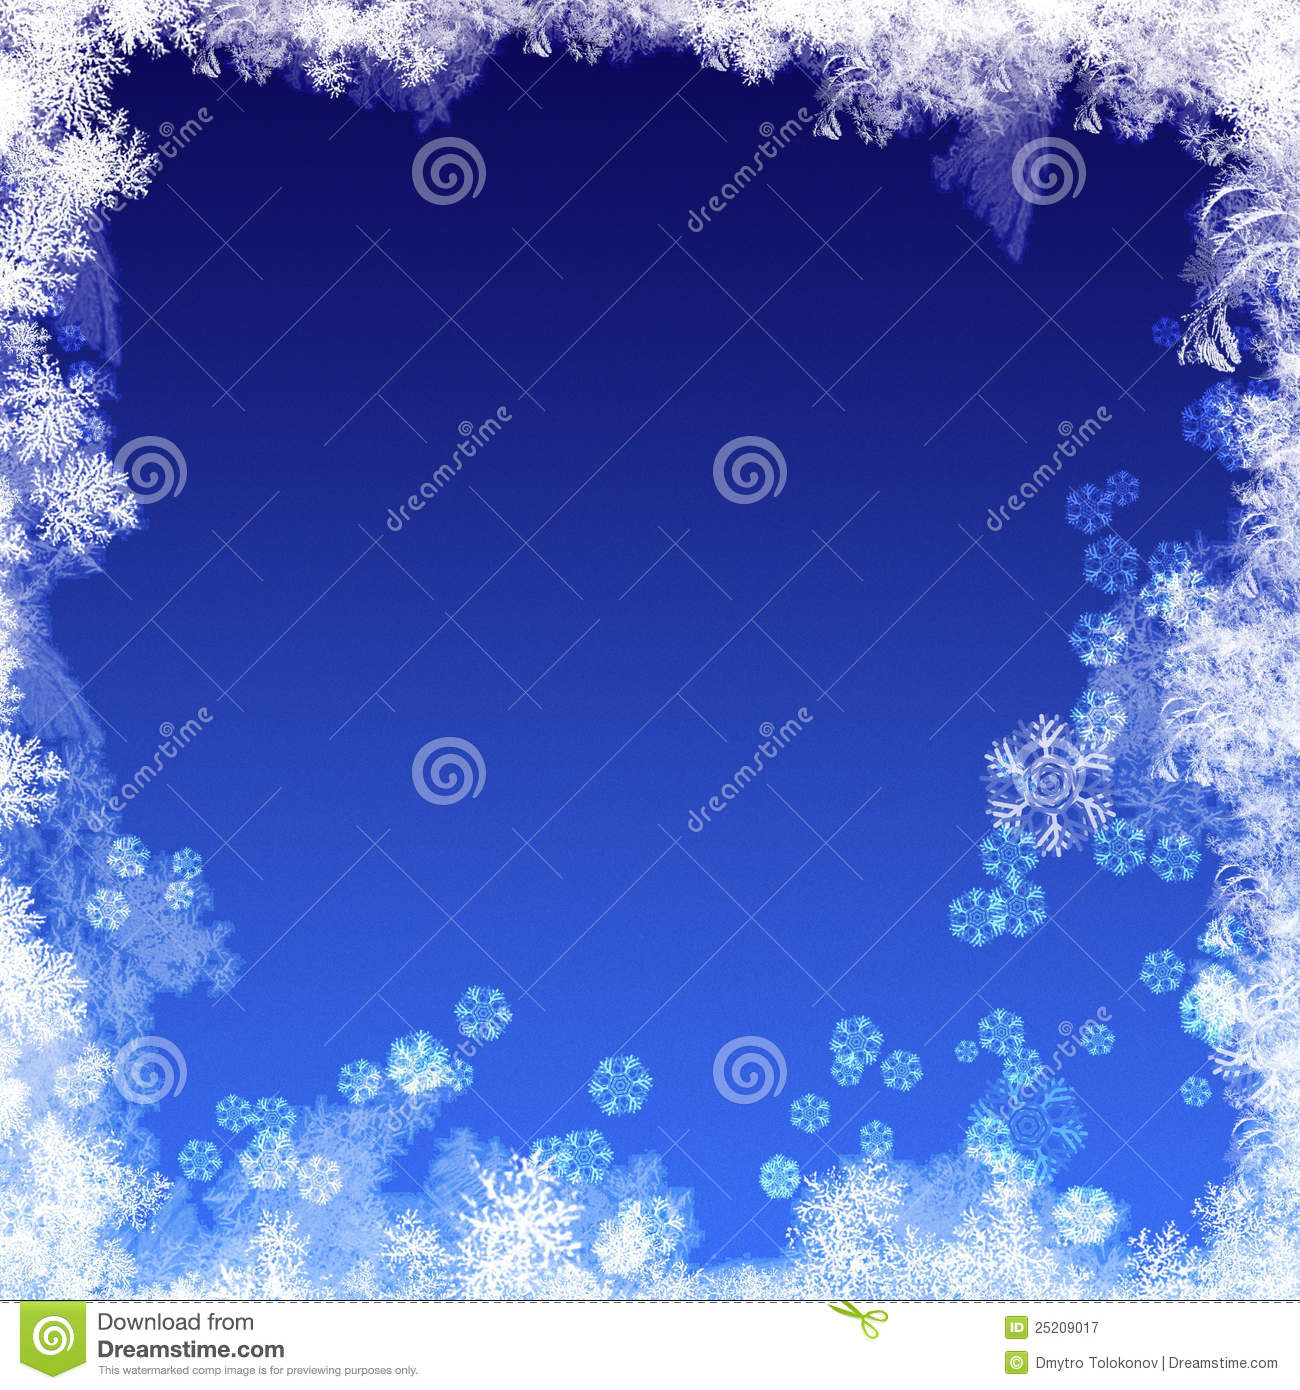 abstract winter background free - photo #22